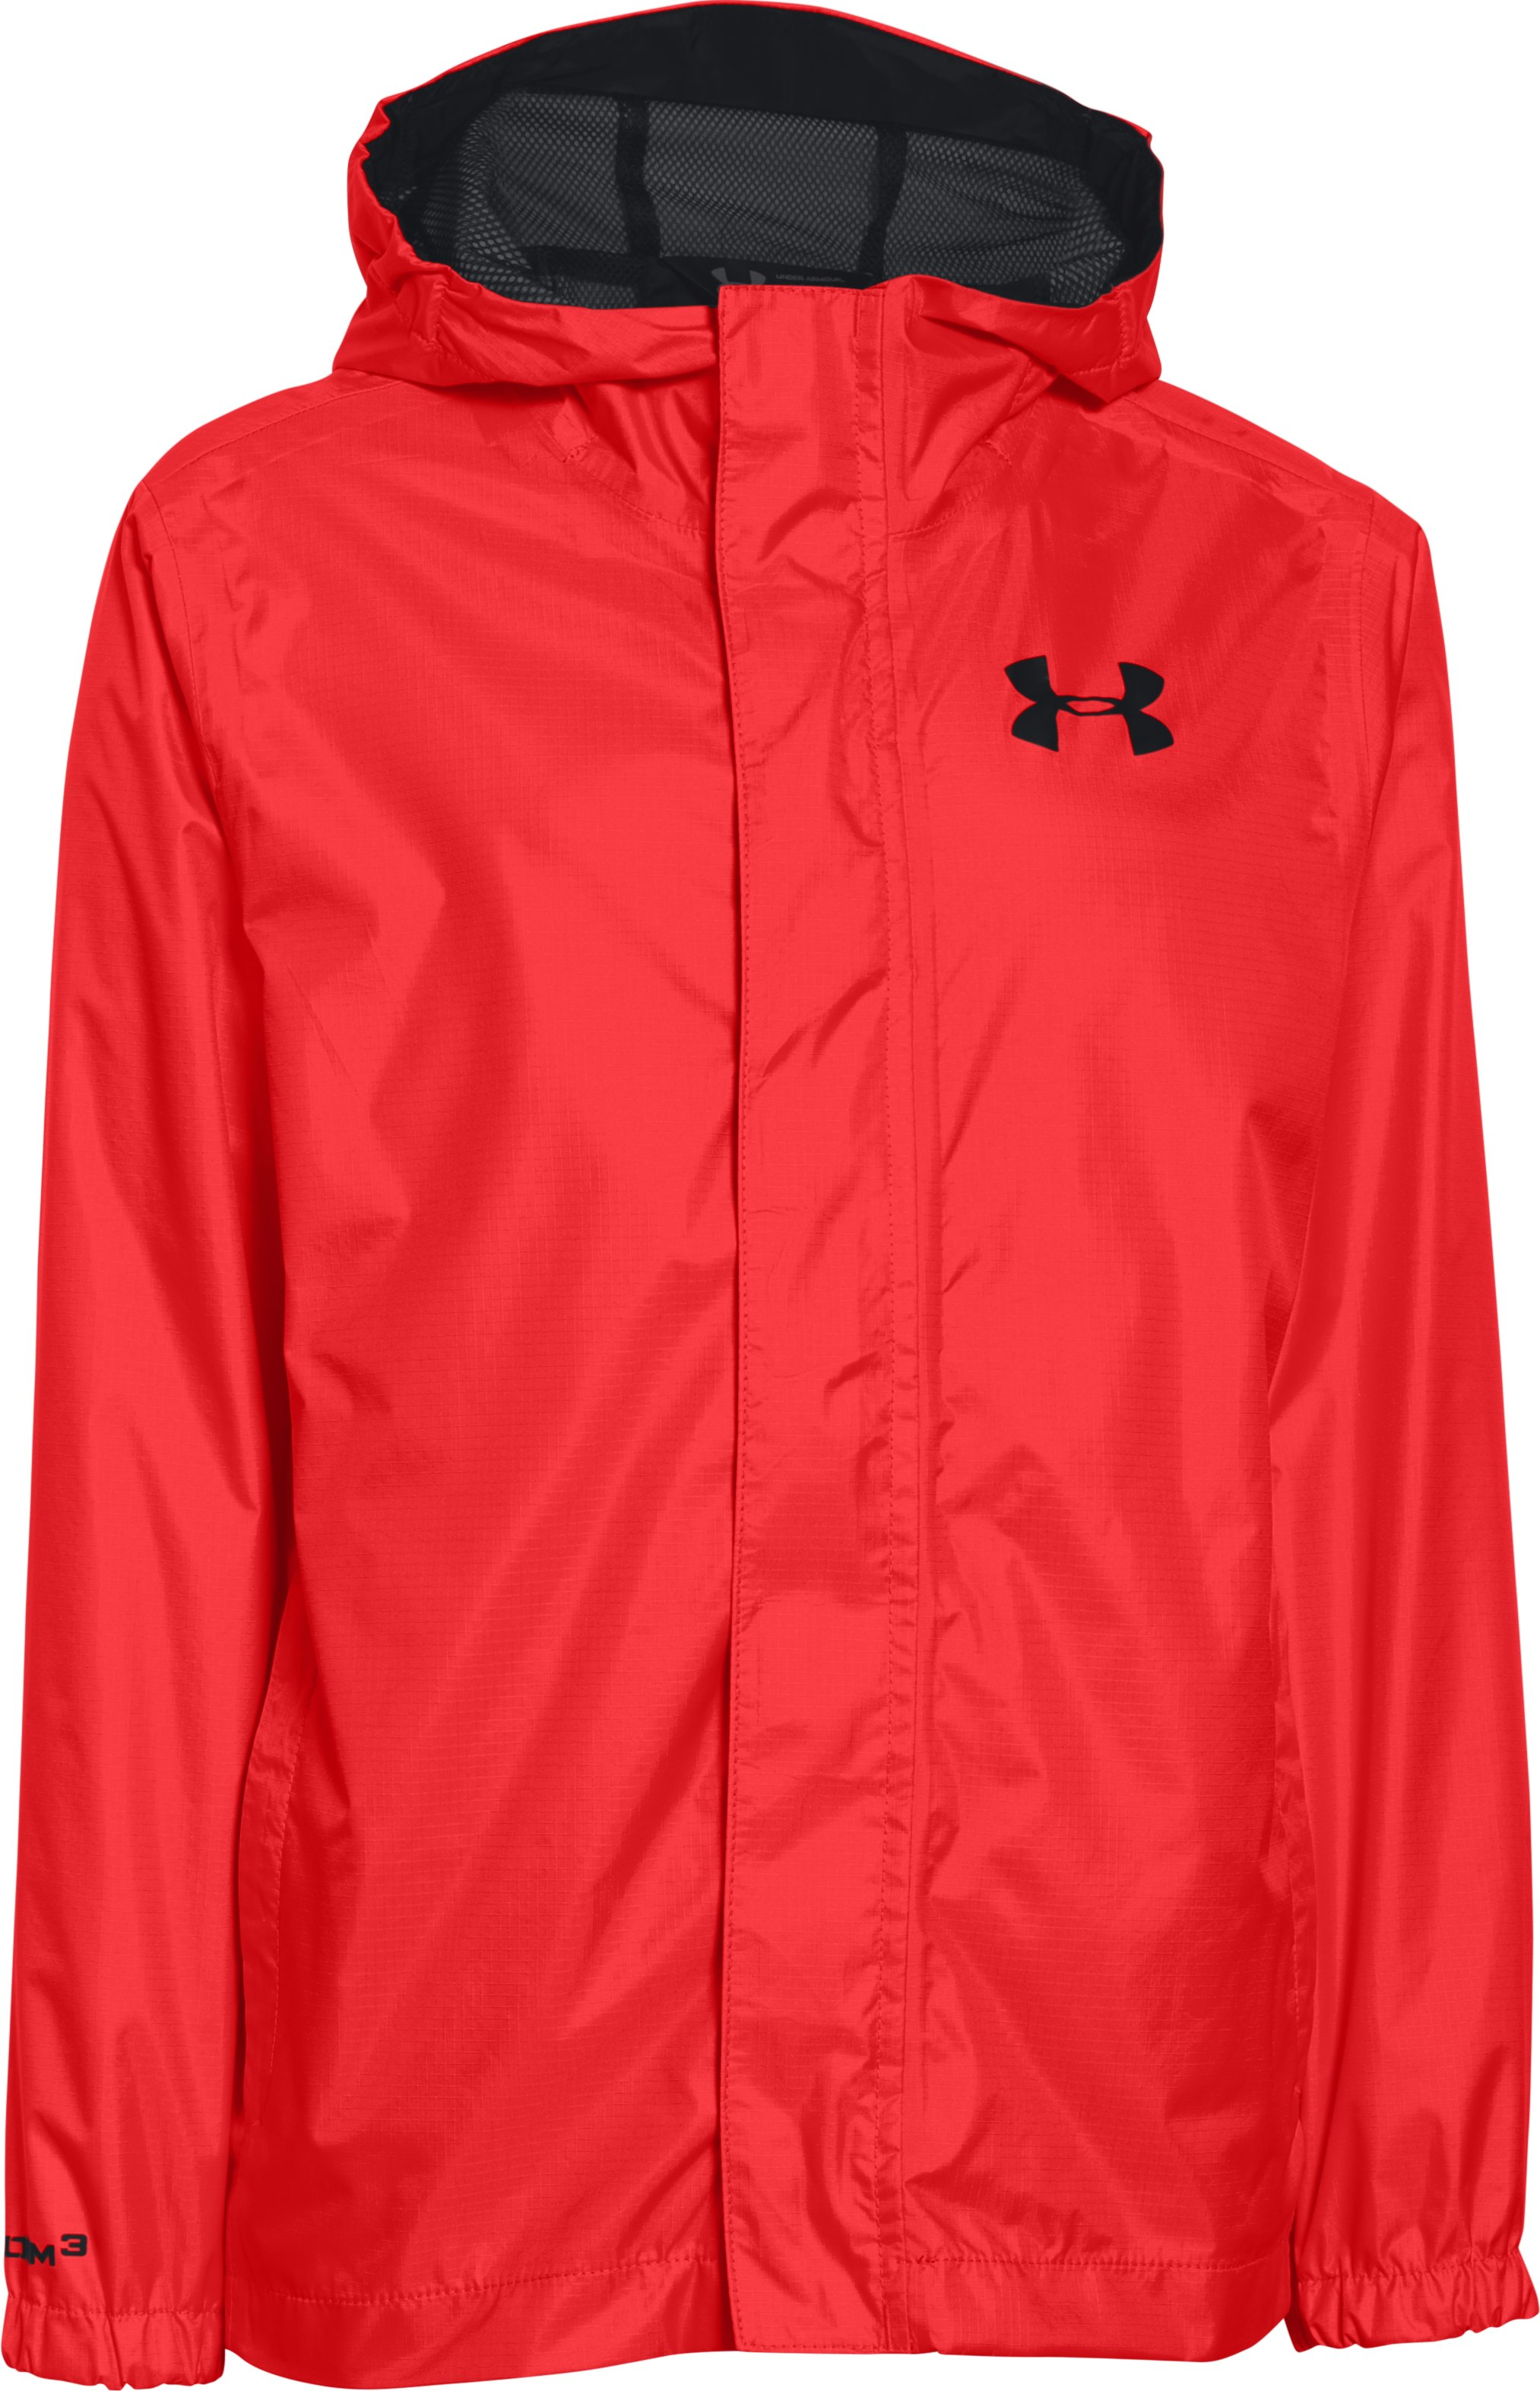 Boys' UA Clean Up Piped Baseball Jacket, ROCKET RED